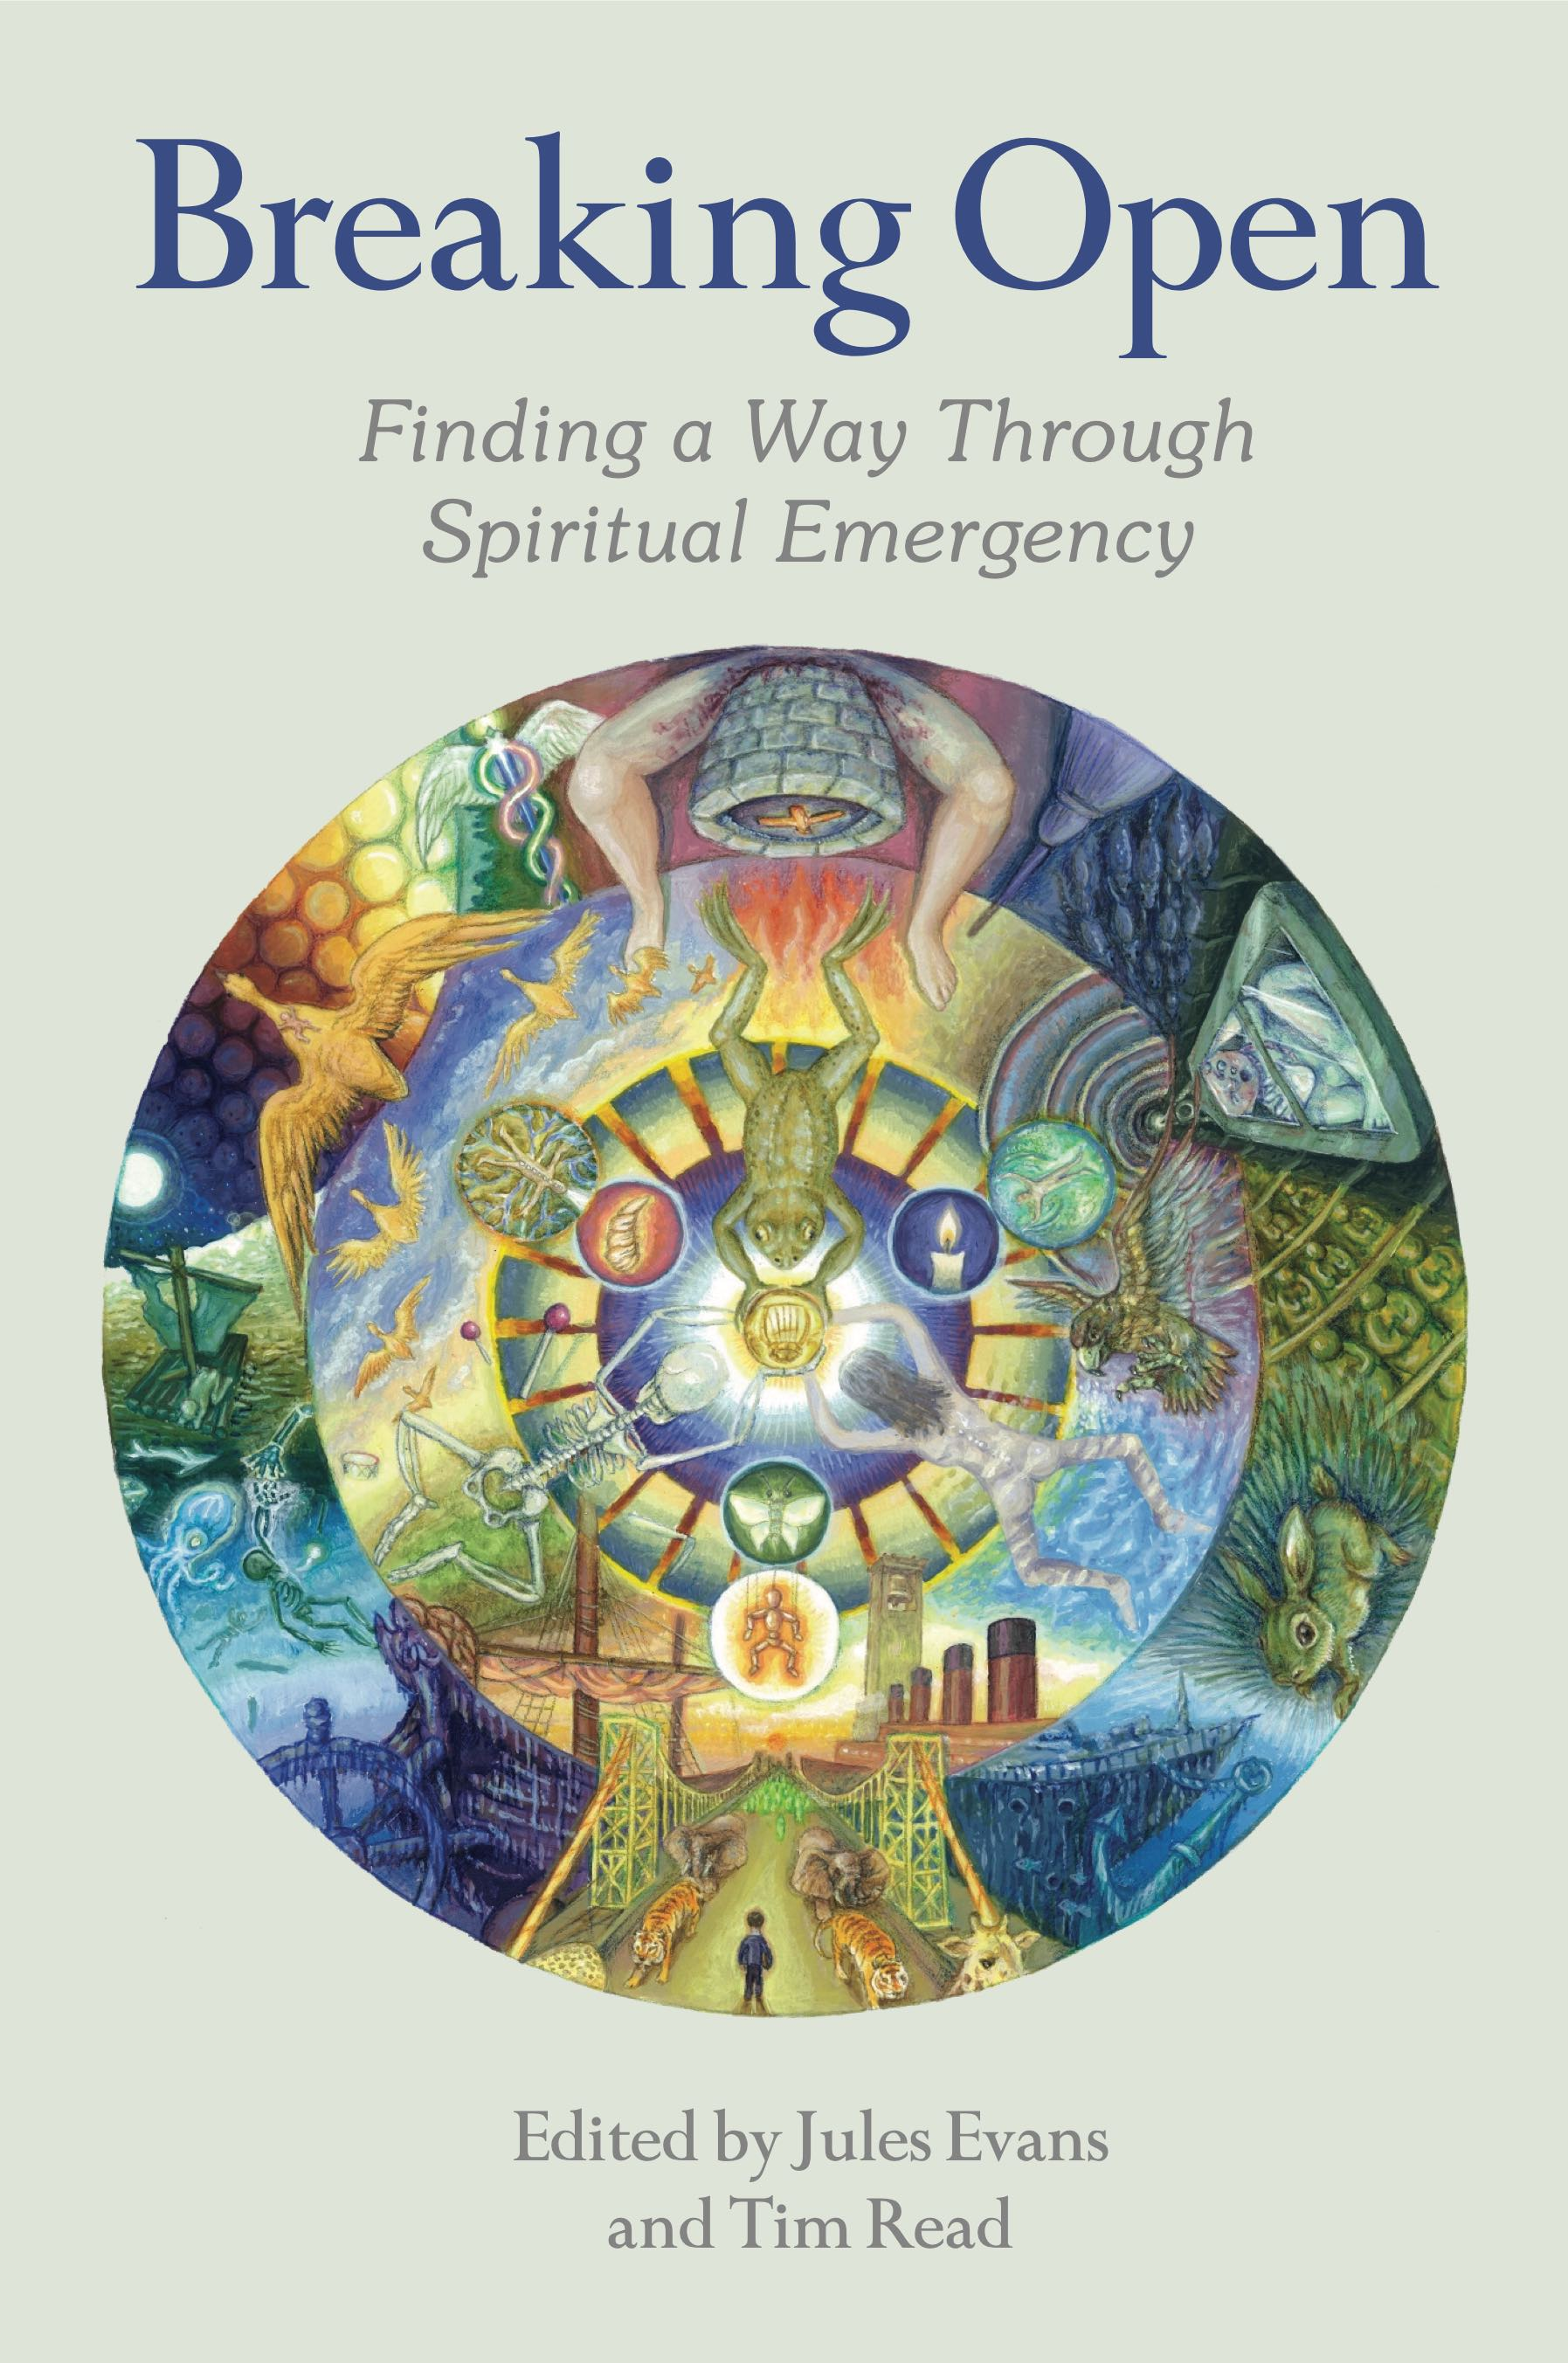 Breaking Open: Finding a Way Through Spiritual Emergency